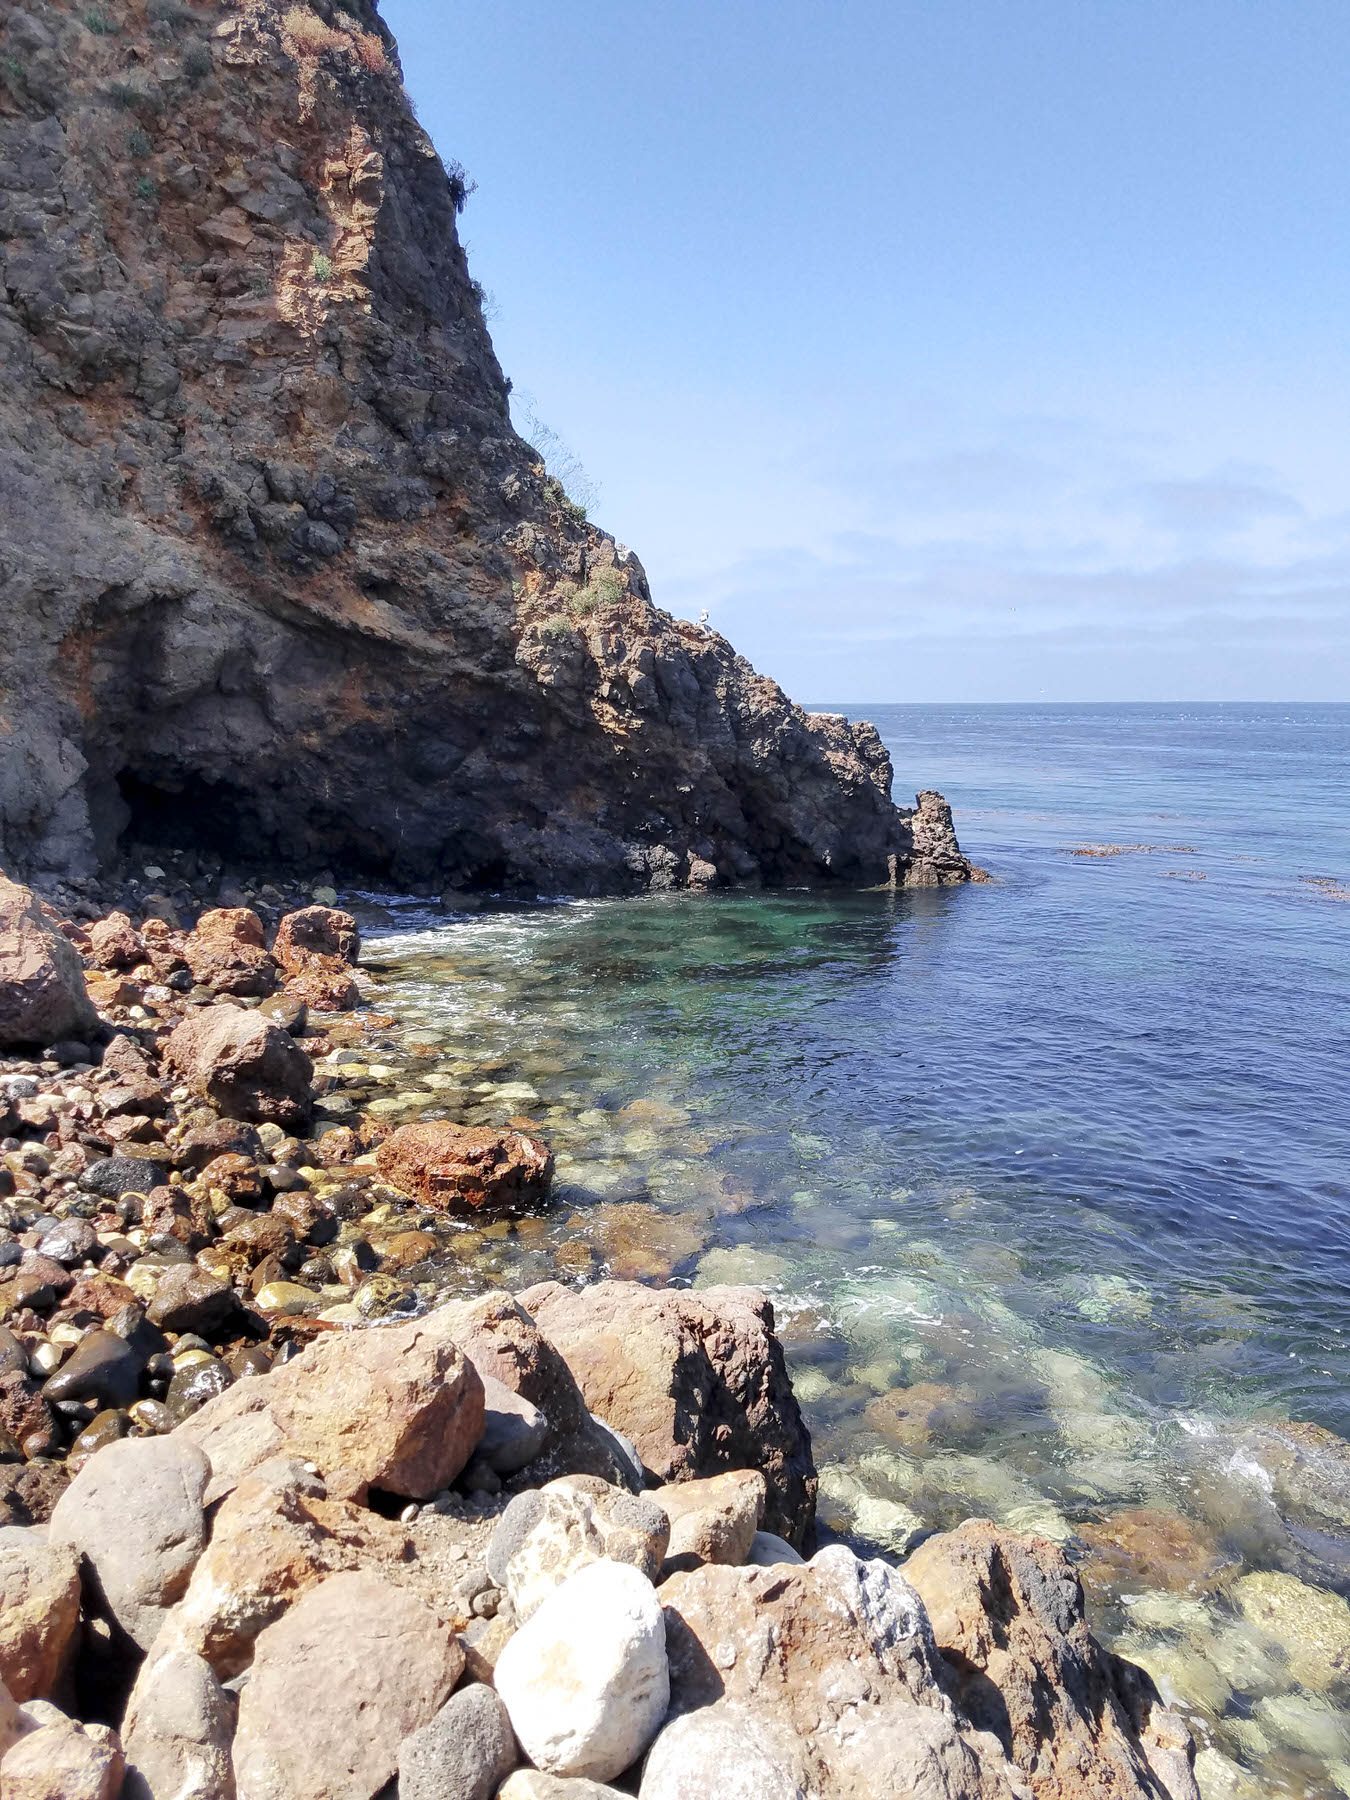 Try sea kayaking in island caves, snorkeling or hiking while exploring Channel Islands National Park off the coast of California. This remote park is an incredible place to experience nature away from large groups of tourists. Channel Islands kayaking should be at the top of everyone's travel list. #nationalpark #california #kayaking #hiking #traveldestinations